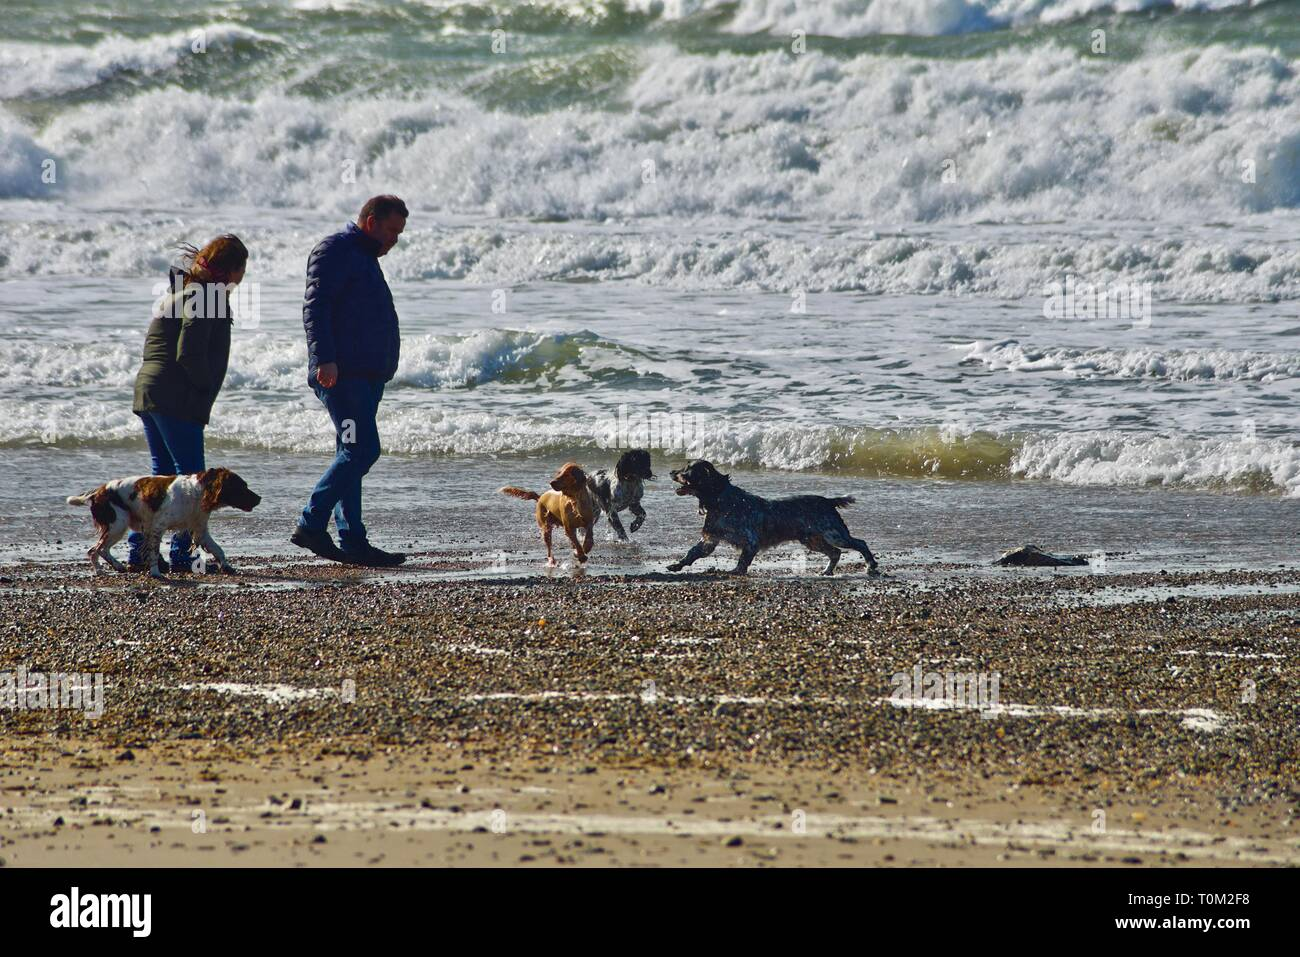 A middle aged couple throw a stick into a wild sea for their four dogs to chase on a windy beach, Rhosneigr, Anglesey, North Wales, UK - Stock Image